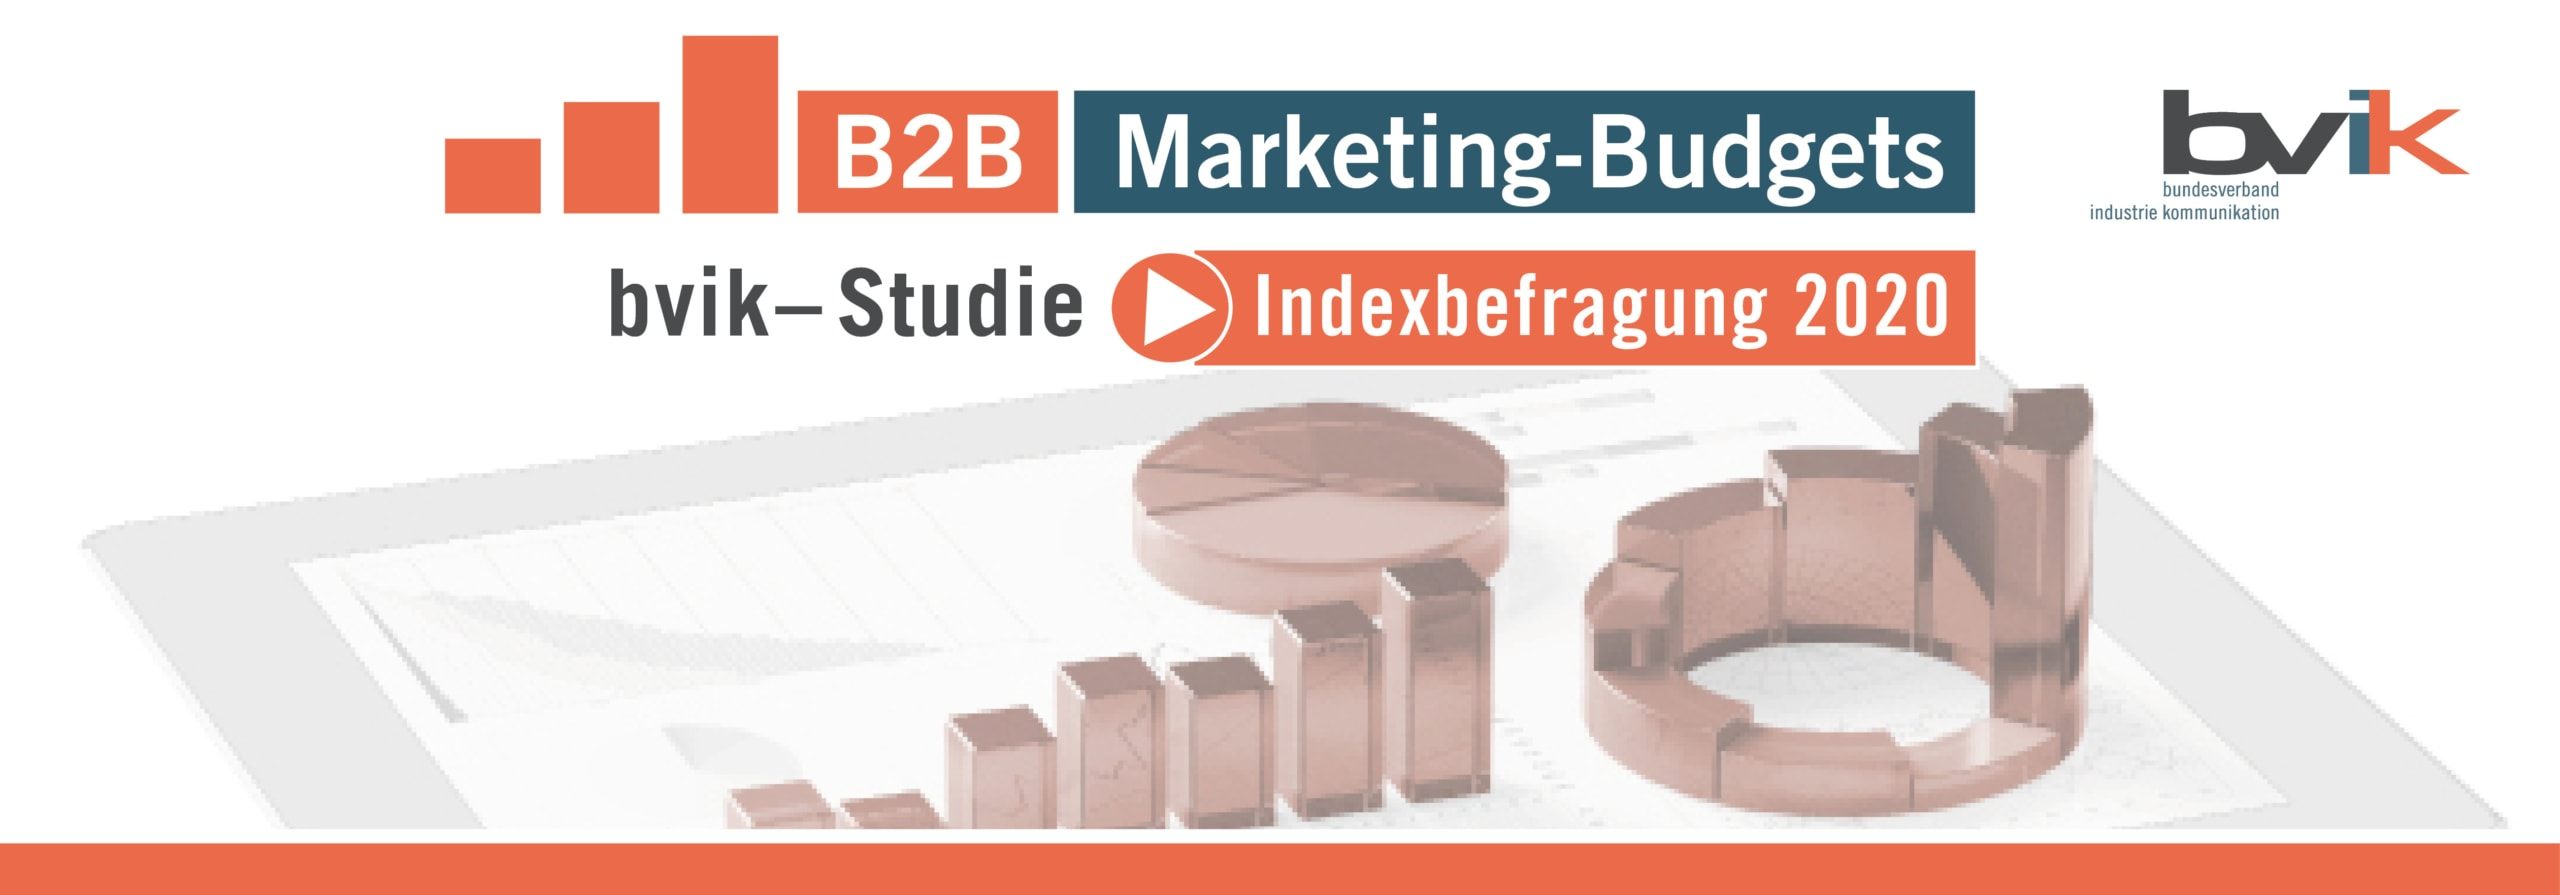 B2B-Marketing-Budgets - Studie 2020